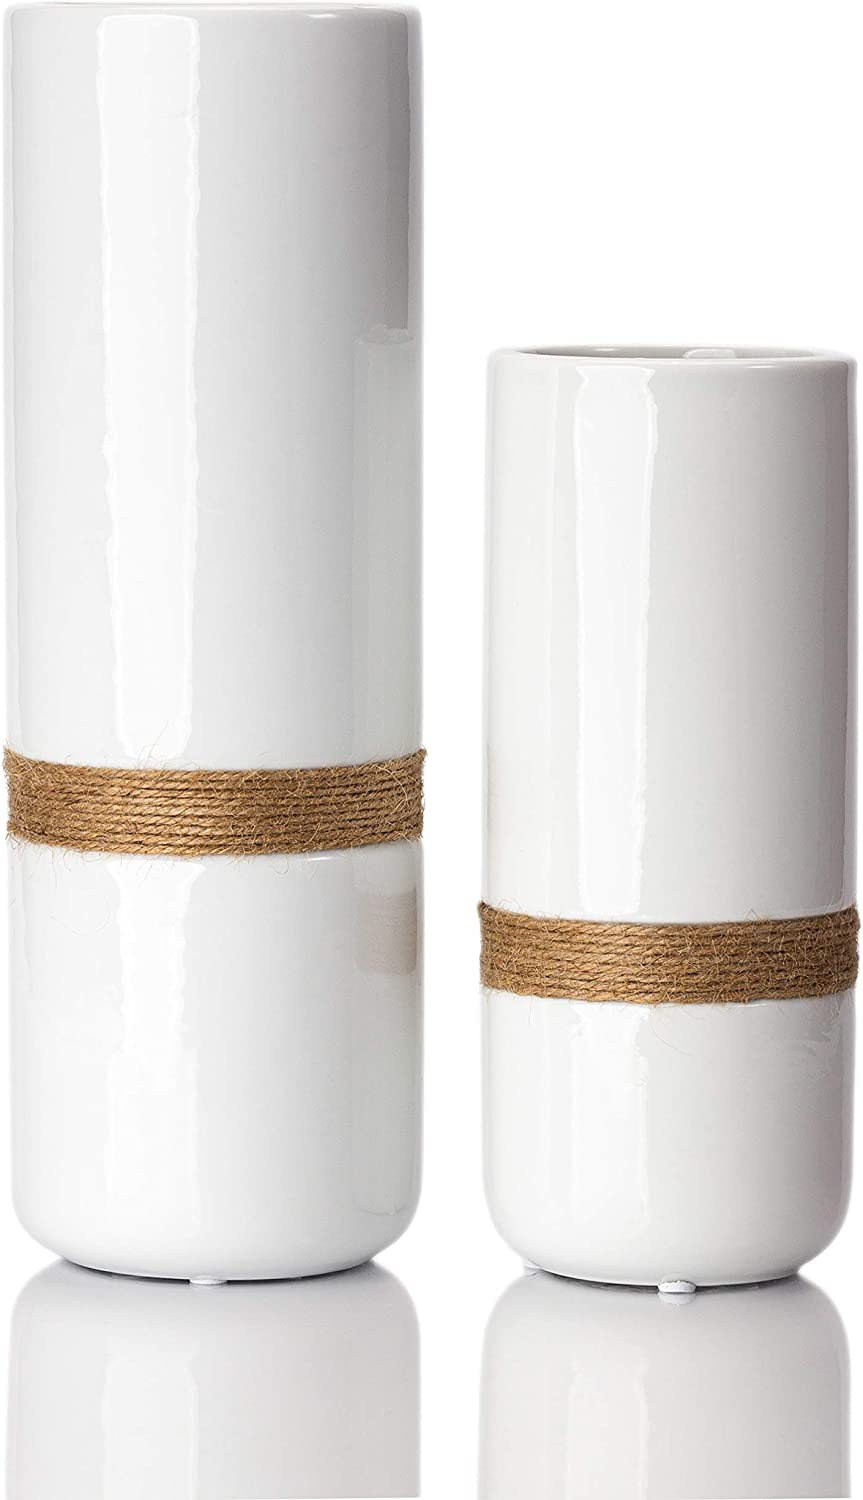 Jasius Ceramic White Vase Set - Elegant White Vases for Decor with Rustic Boho Rope Accent, Non-Scratch Base - Decorative Minimalist Vases for Flowers, Home, Office, Living Room, Kitchen - 2-Piece